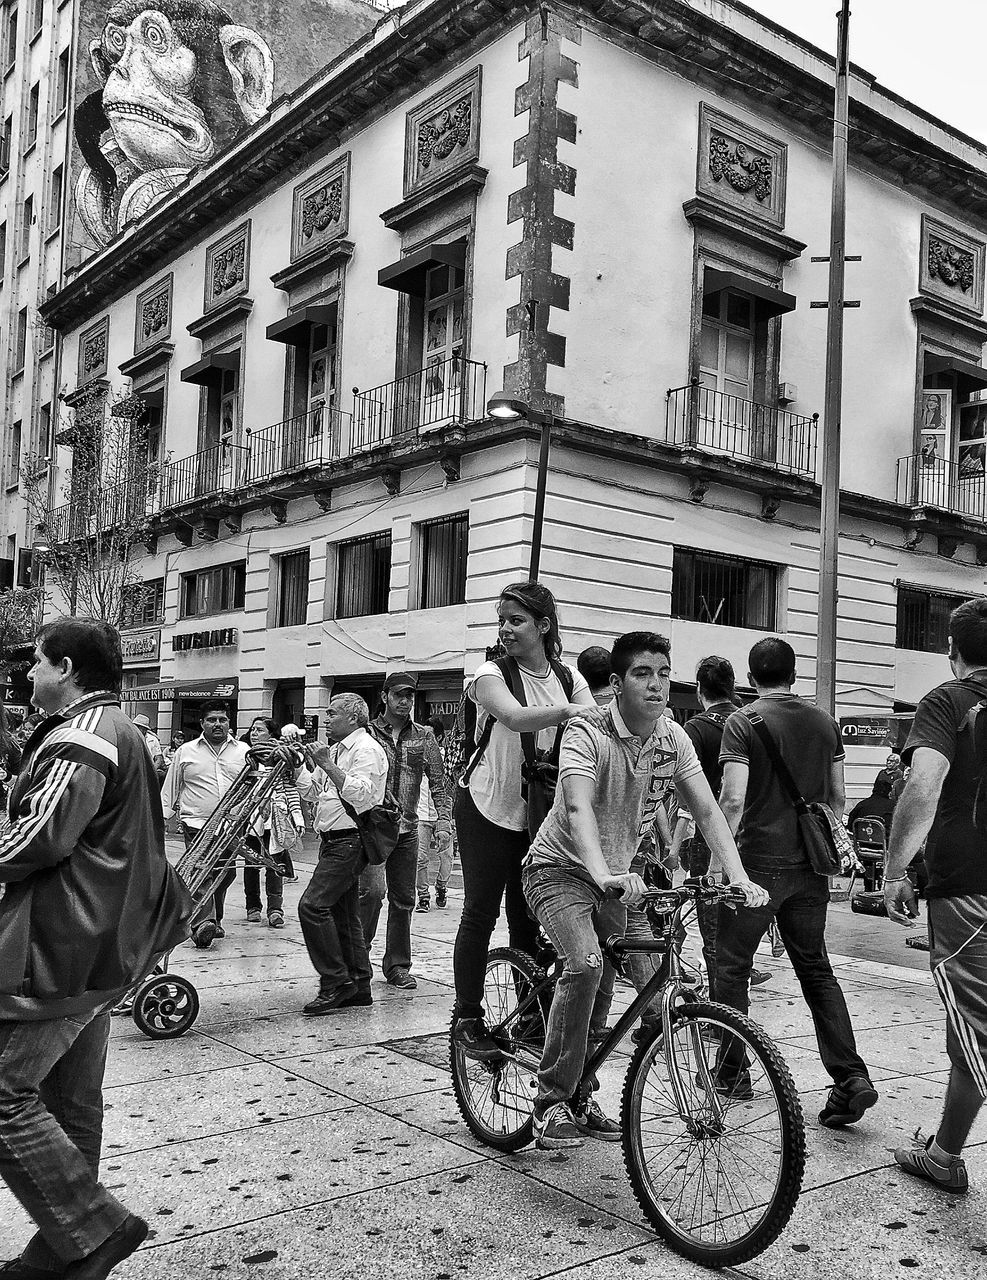 building exterior, architecture, built structure, large group of people, men, real people, street, women, day, city life, outdoors, city, transportation, bicycle, protestor, sky, adult, people, adults only